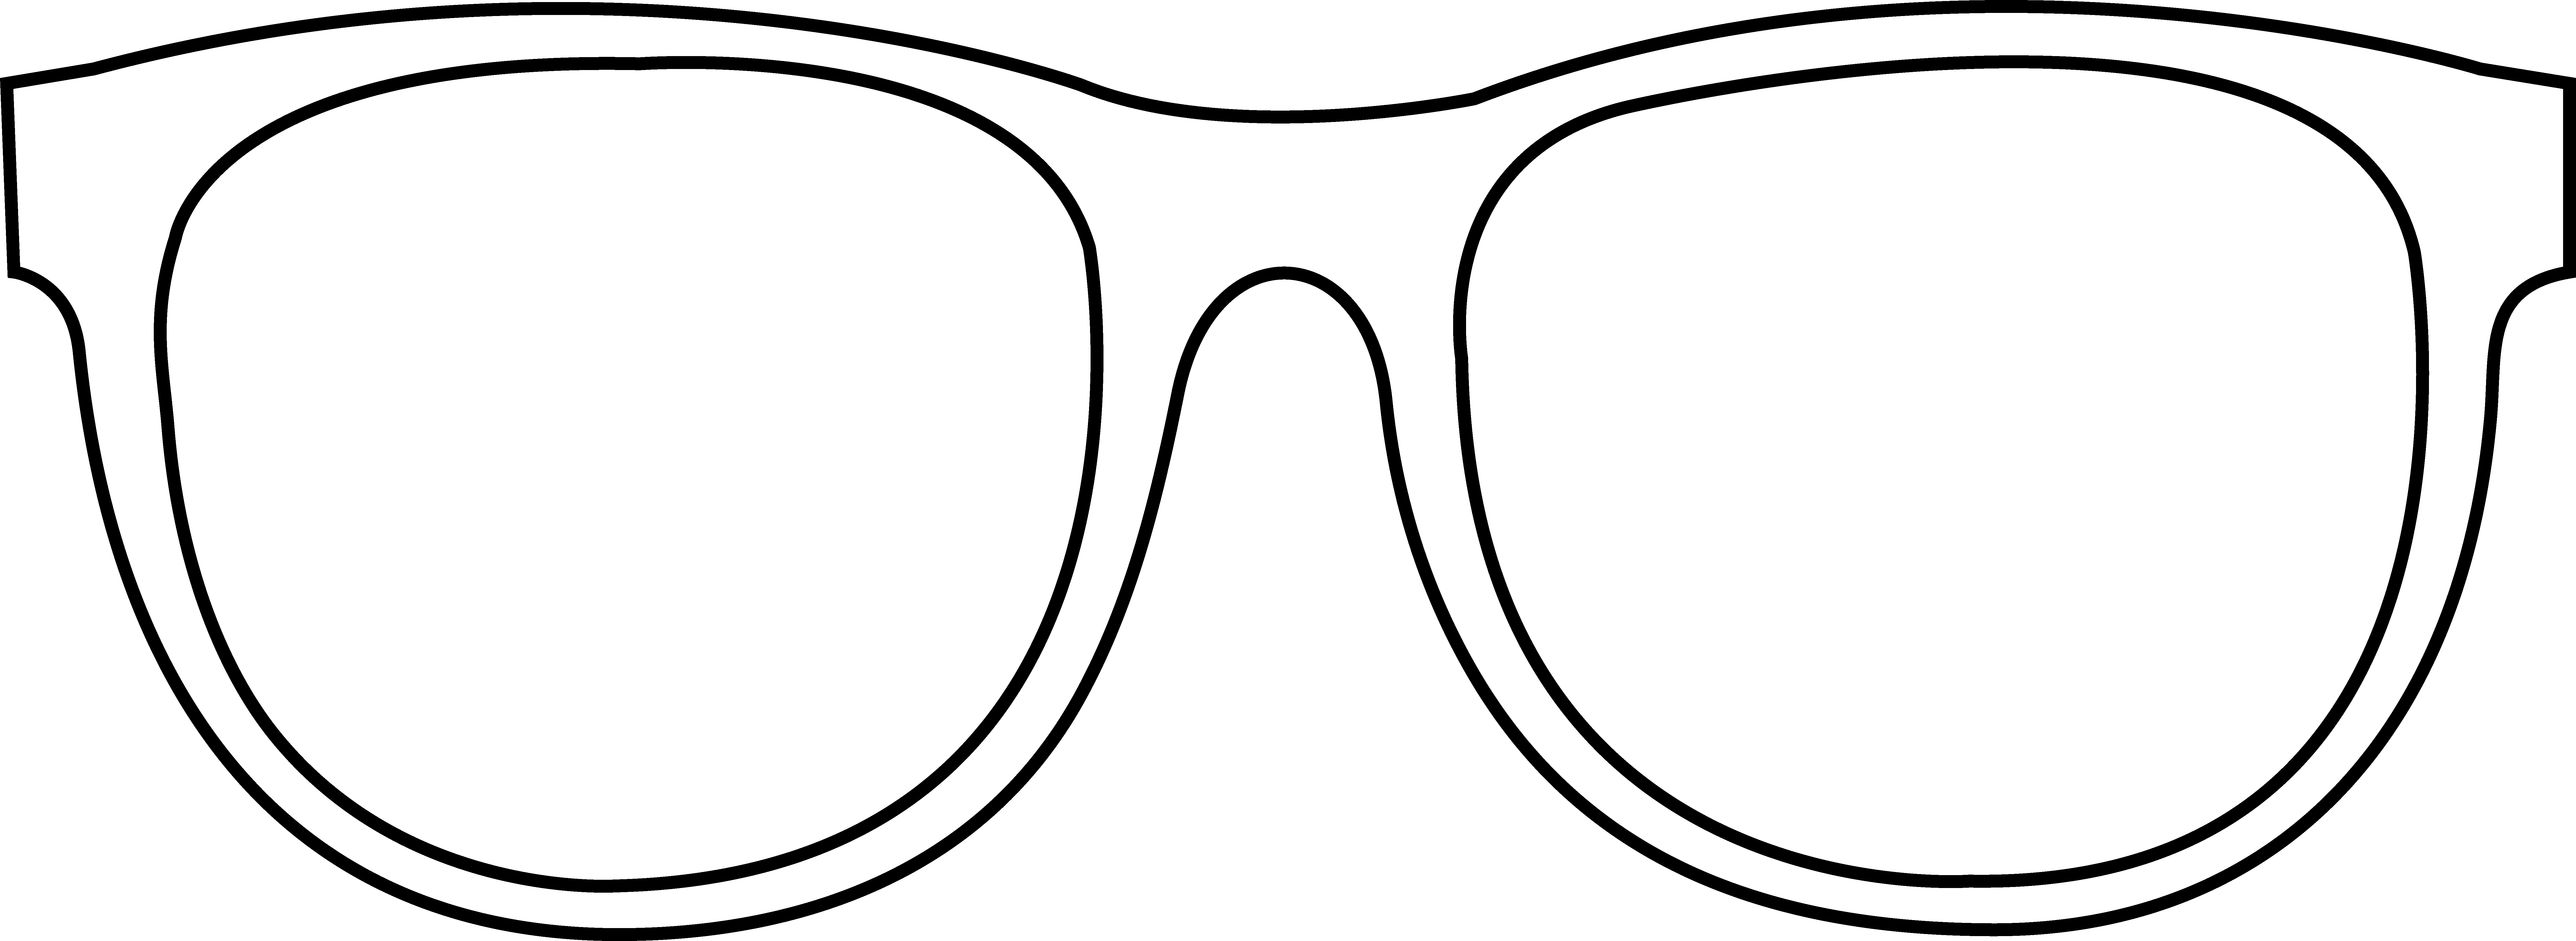 Printable free collection download. Clipart sunglasses line art